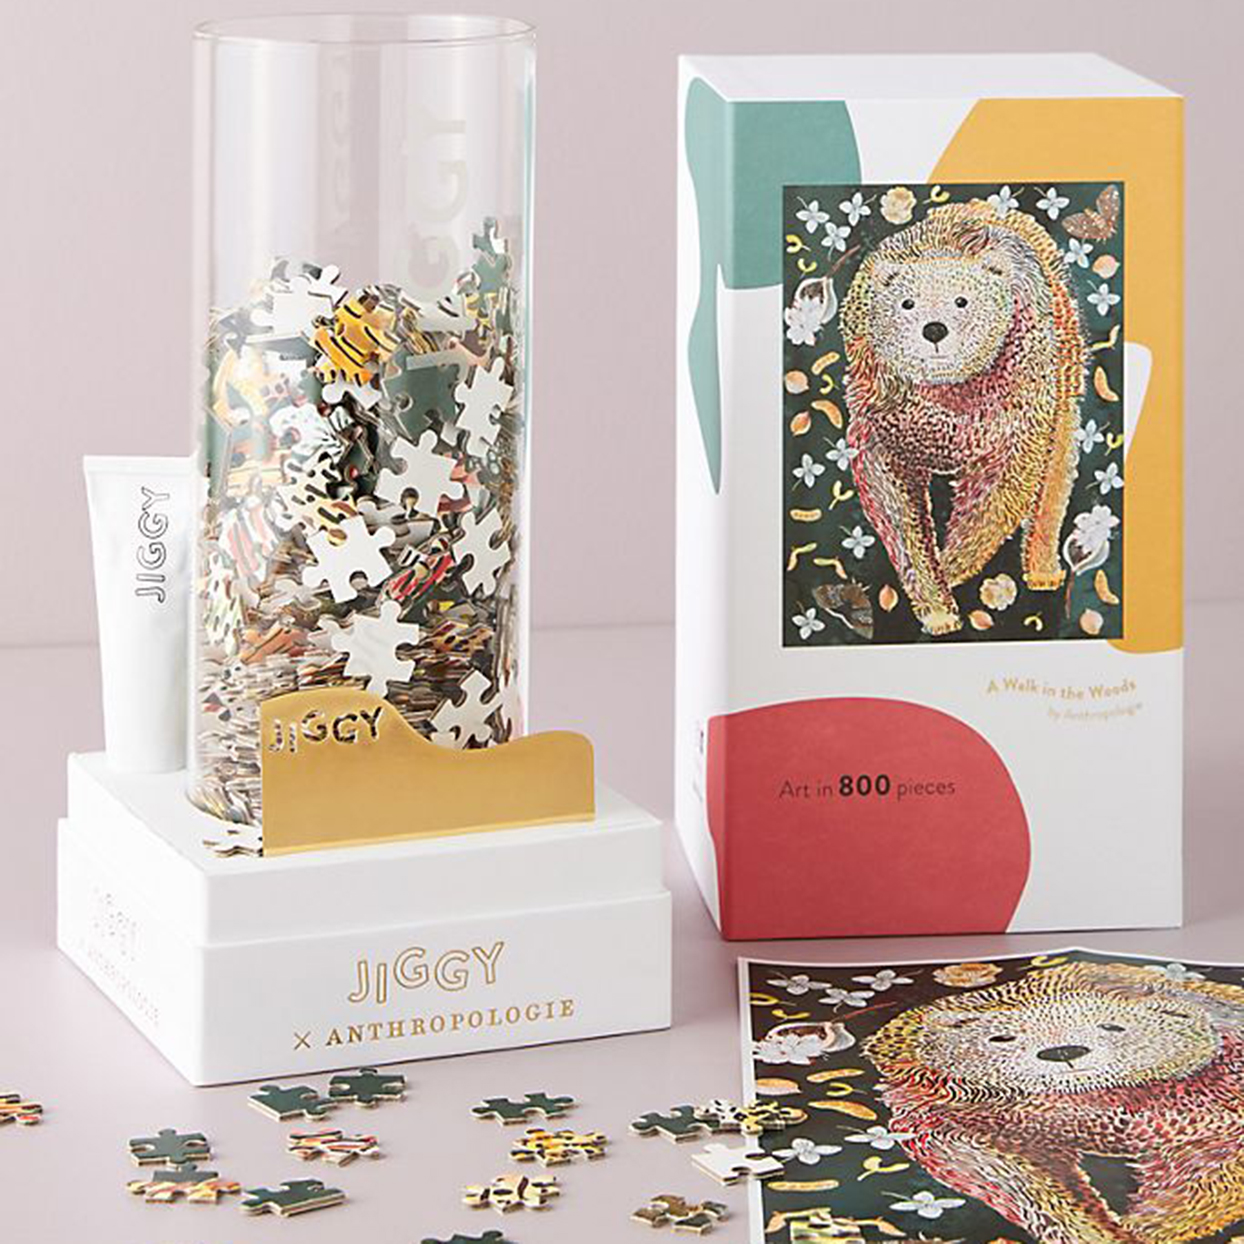 Jiggy for Anthropologie Puzzle and Glue Set